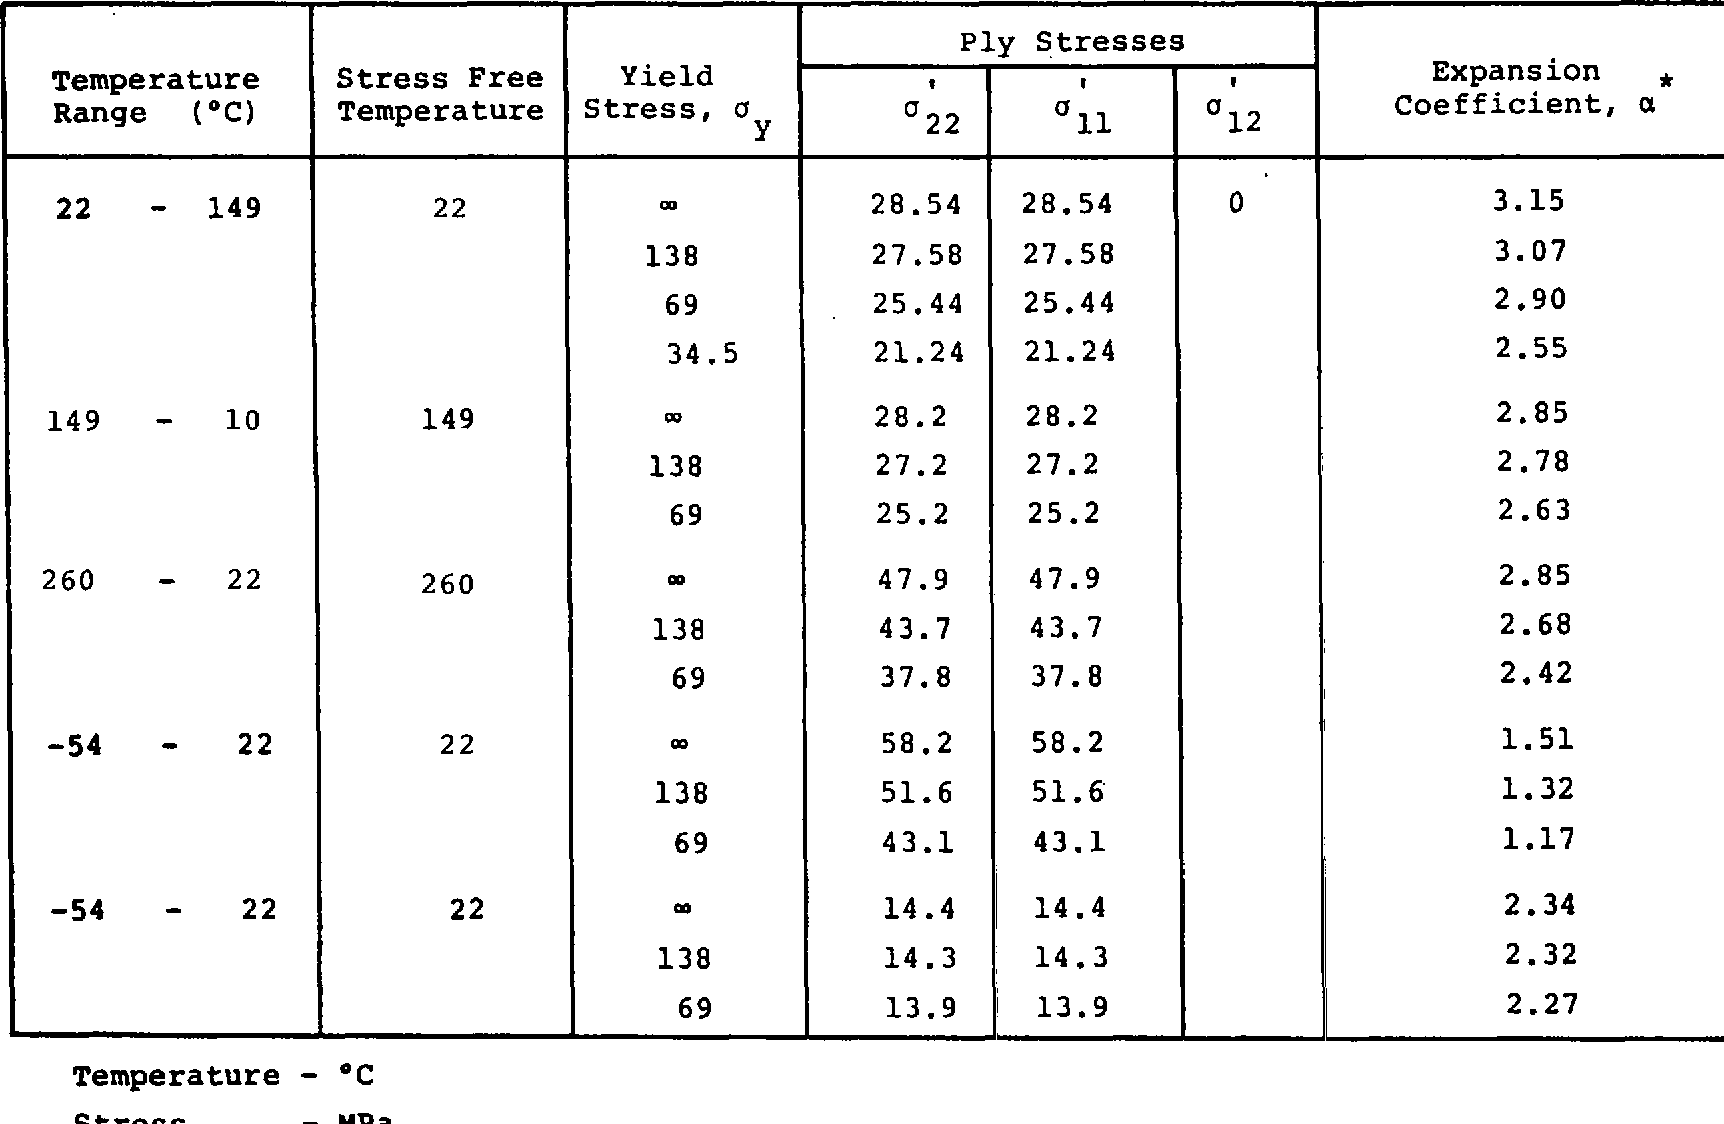 Table 5. Calculated Thermal Expansion Coefficients of G/PI k45' Laminate (No externally applied loads)